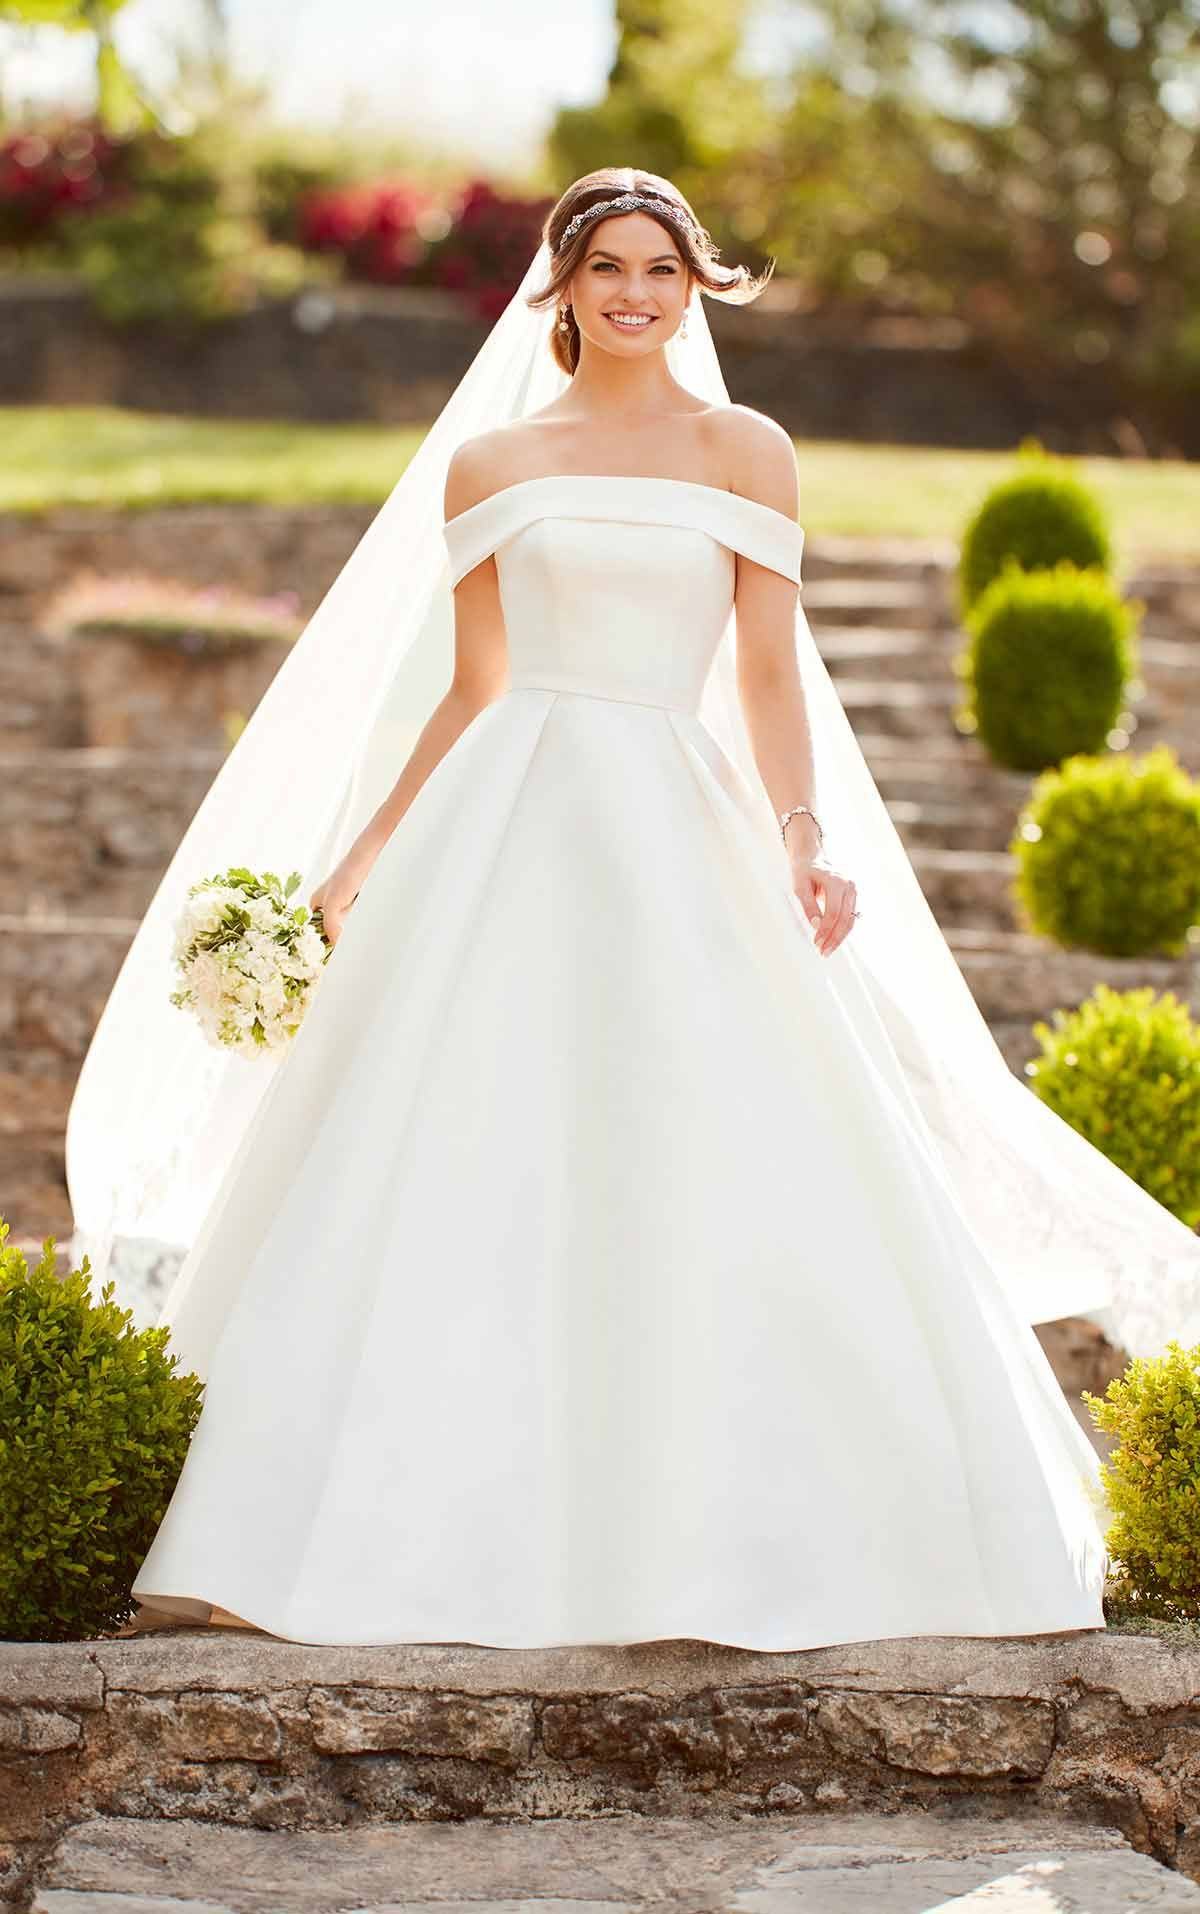 6d228c0f1477 Simple Ballgown Wedding Dress with Off-the-Shoulder Sleeves - Full Skirts,  Ball